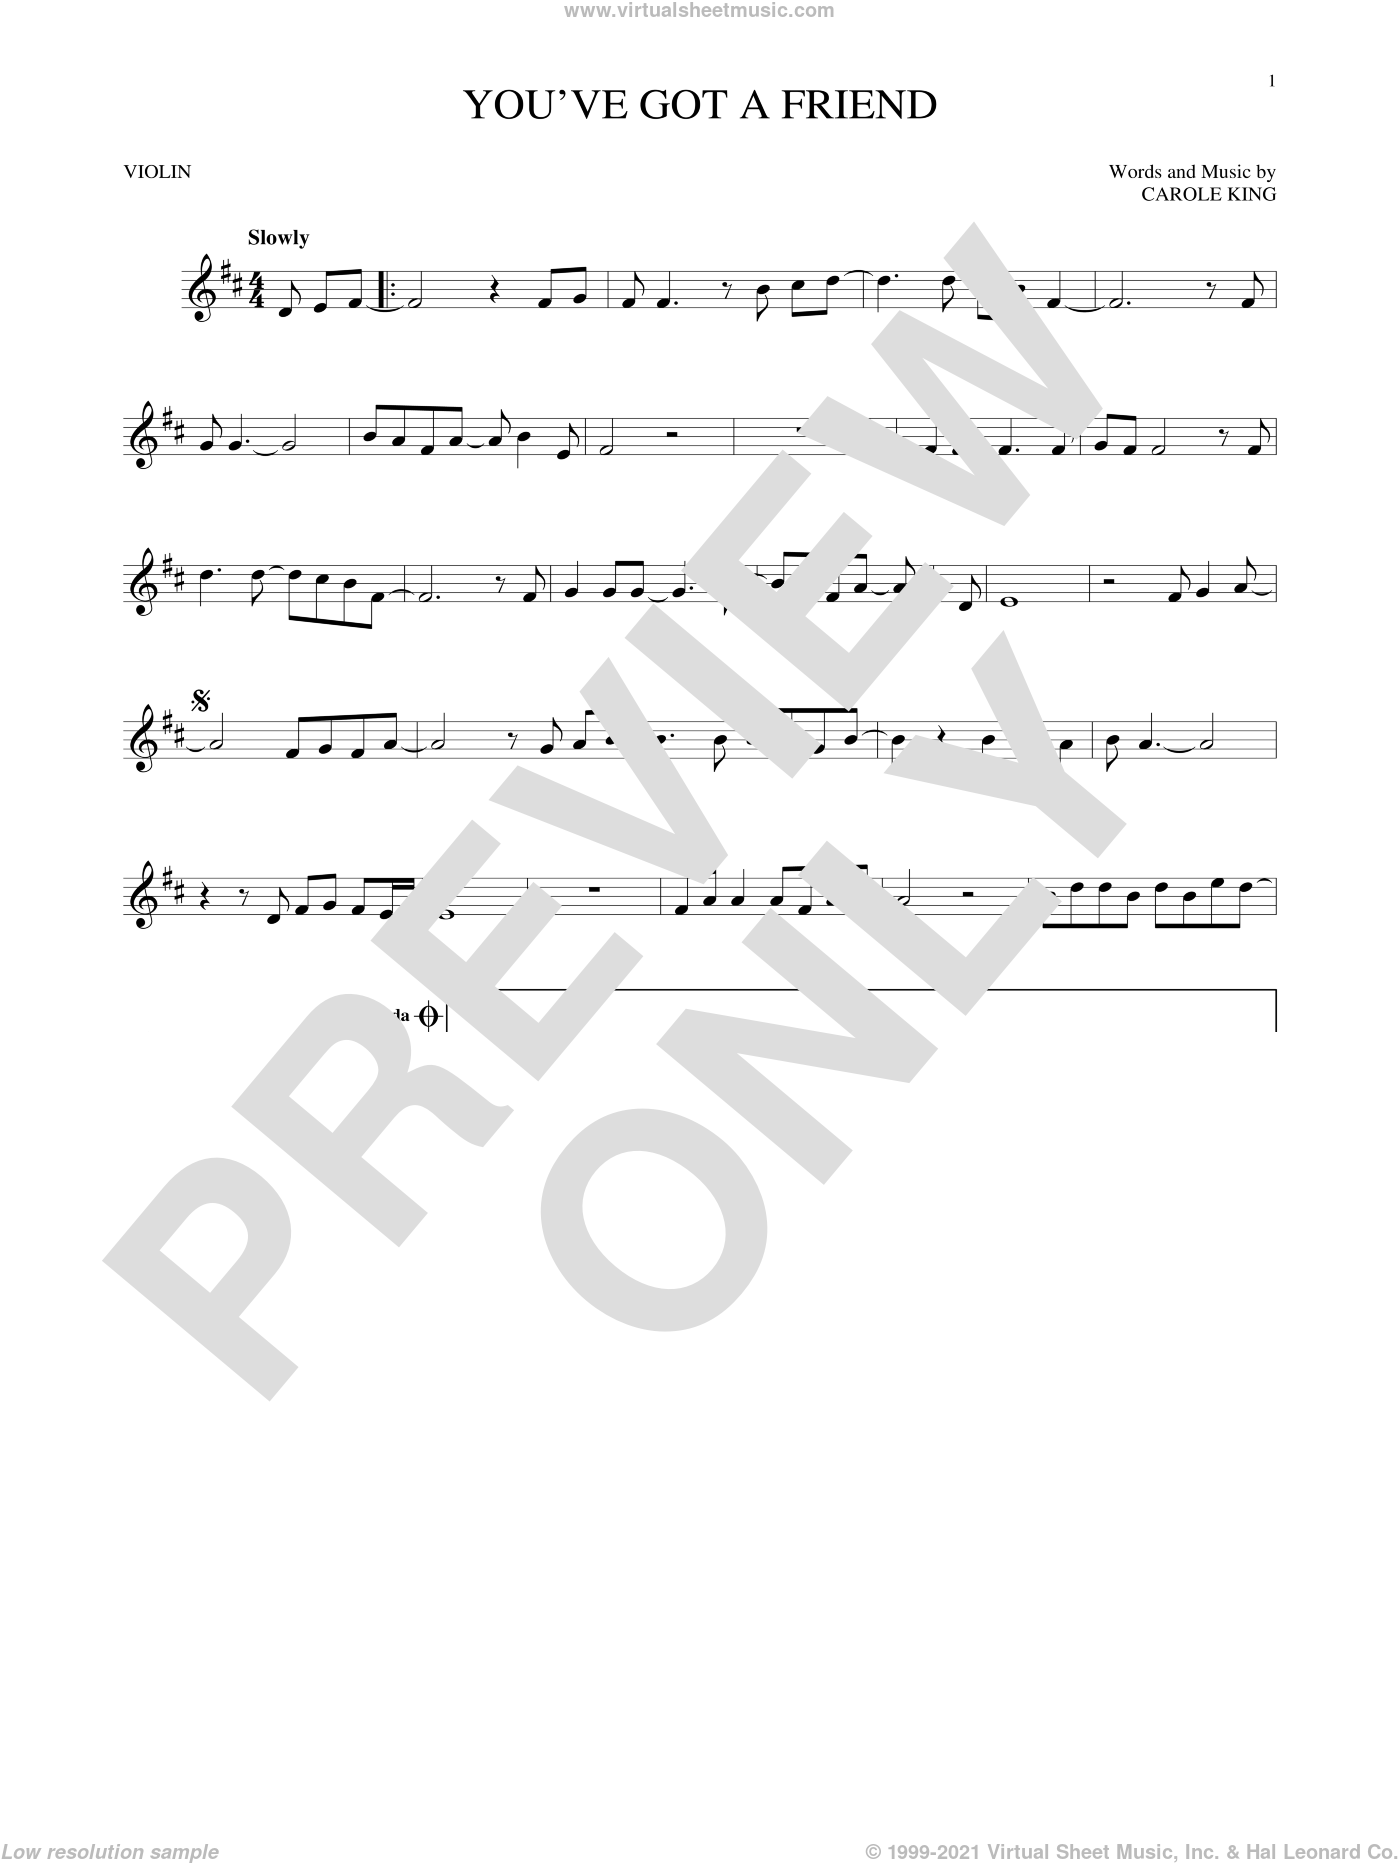 You've Got A Friend sheet music for violin solo by Carole King